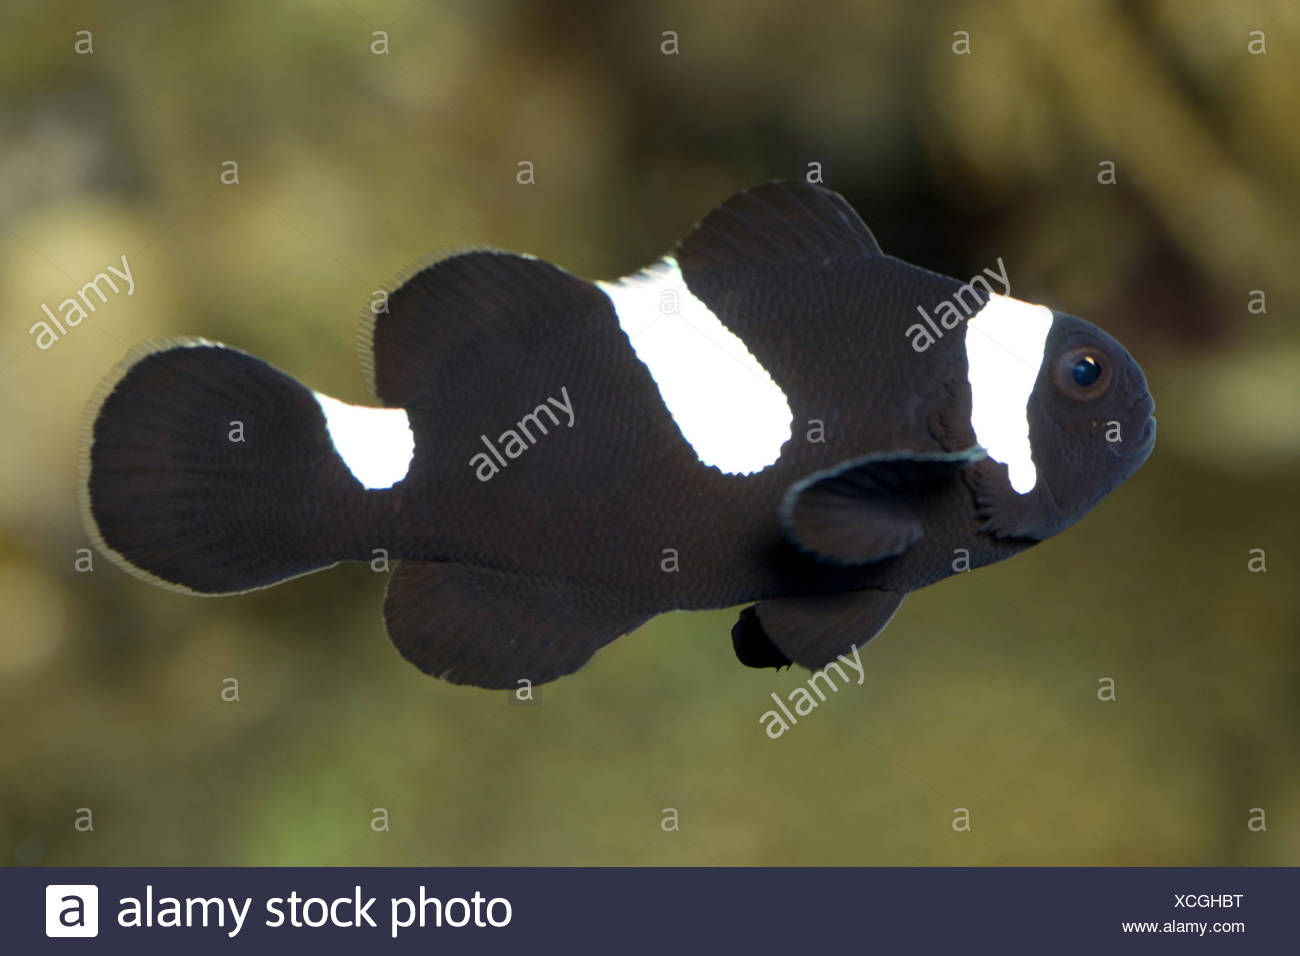 ocellaris clownfish black version amphiprion ocellaris stock